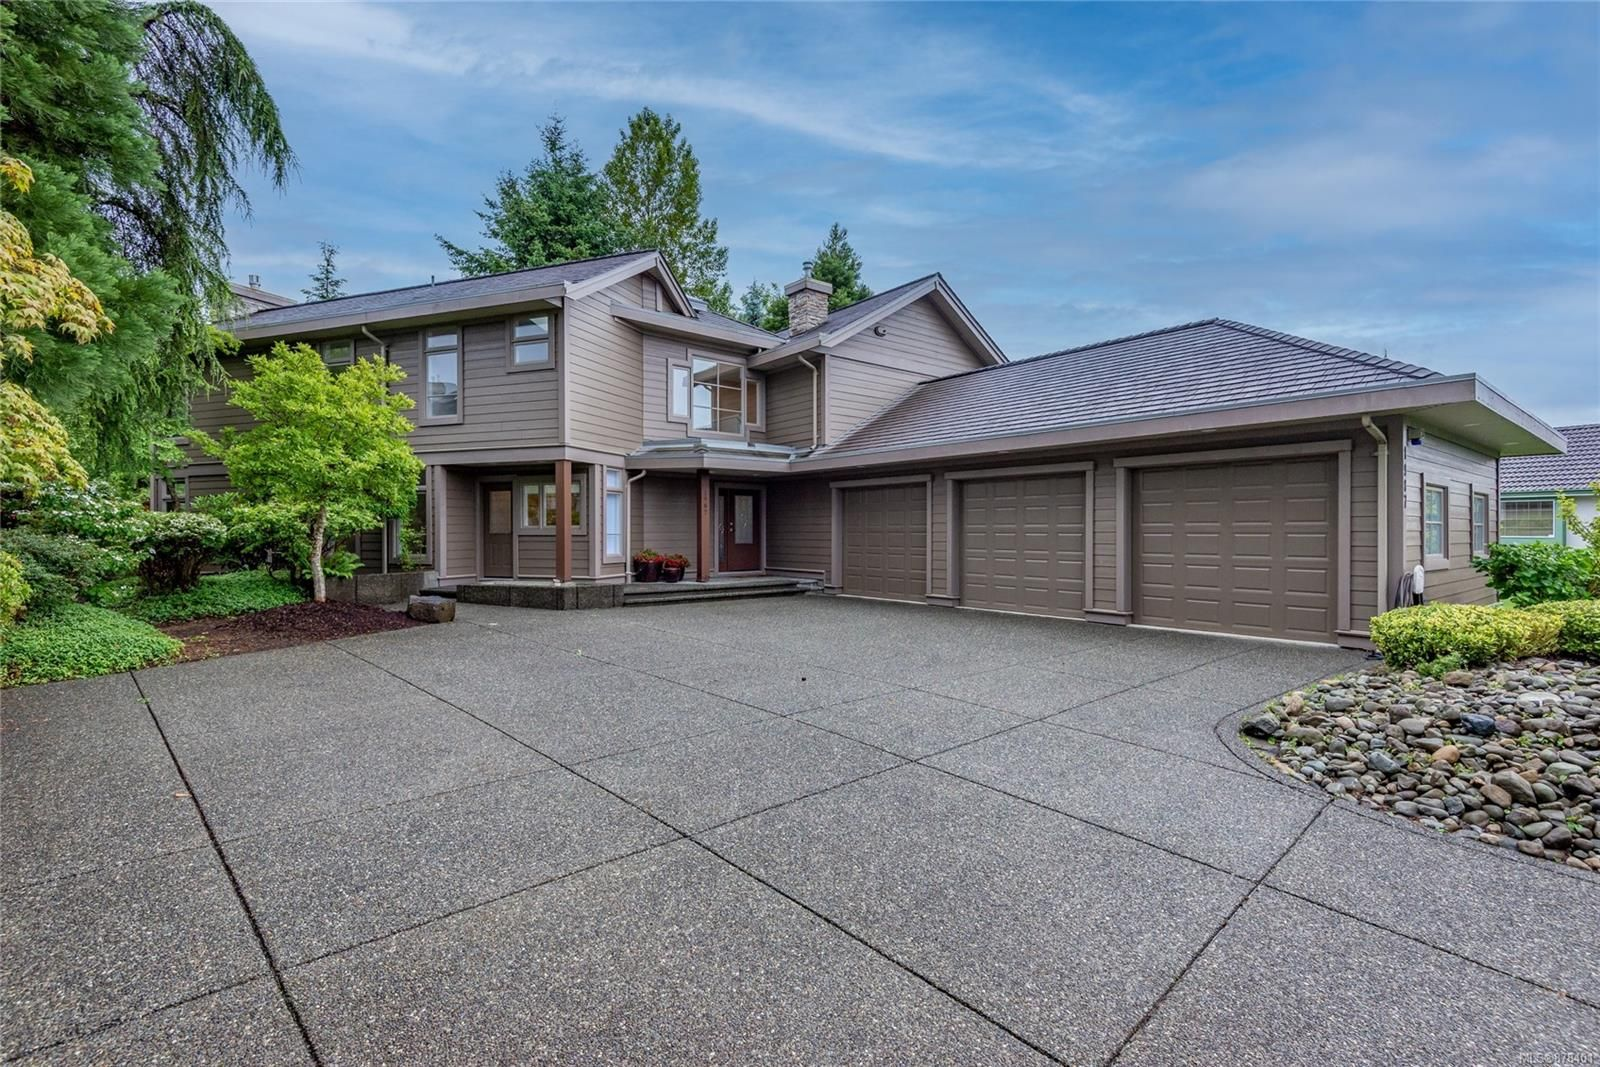 Main Photo: 1987 Fairway Dr in : CR Campbell River West House for sale (Campbell River)  : MLS®# 878401